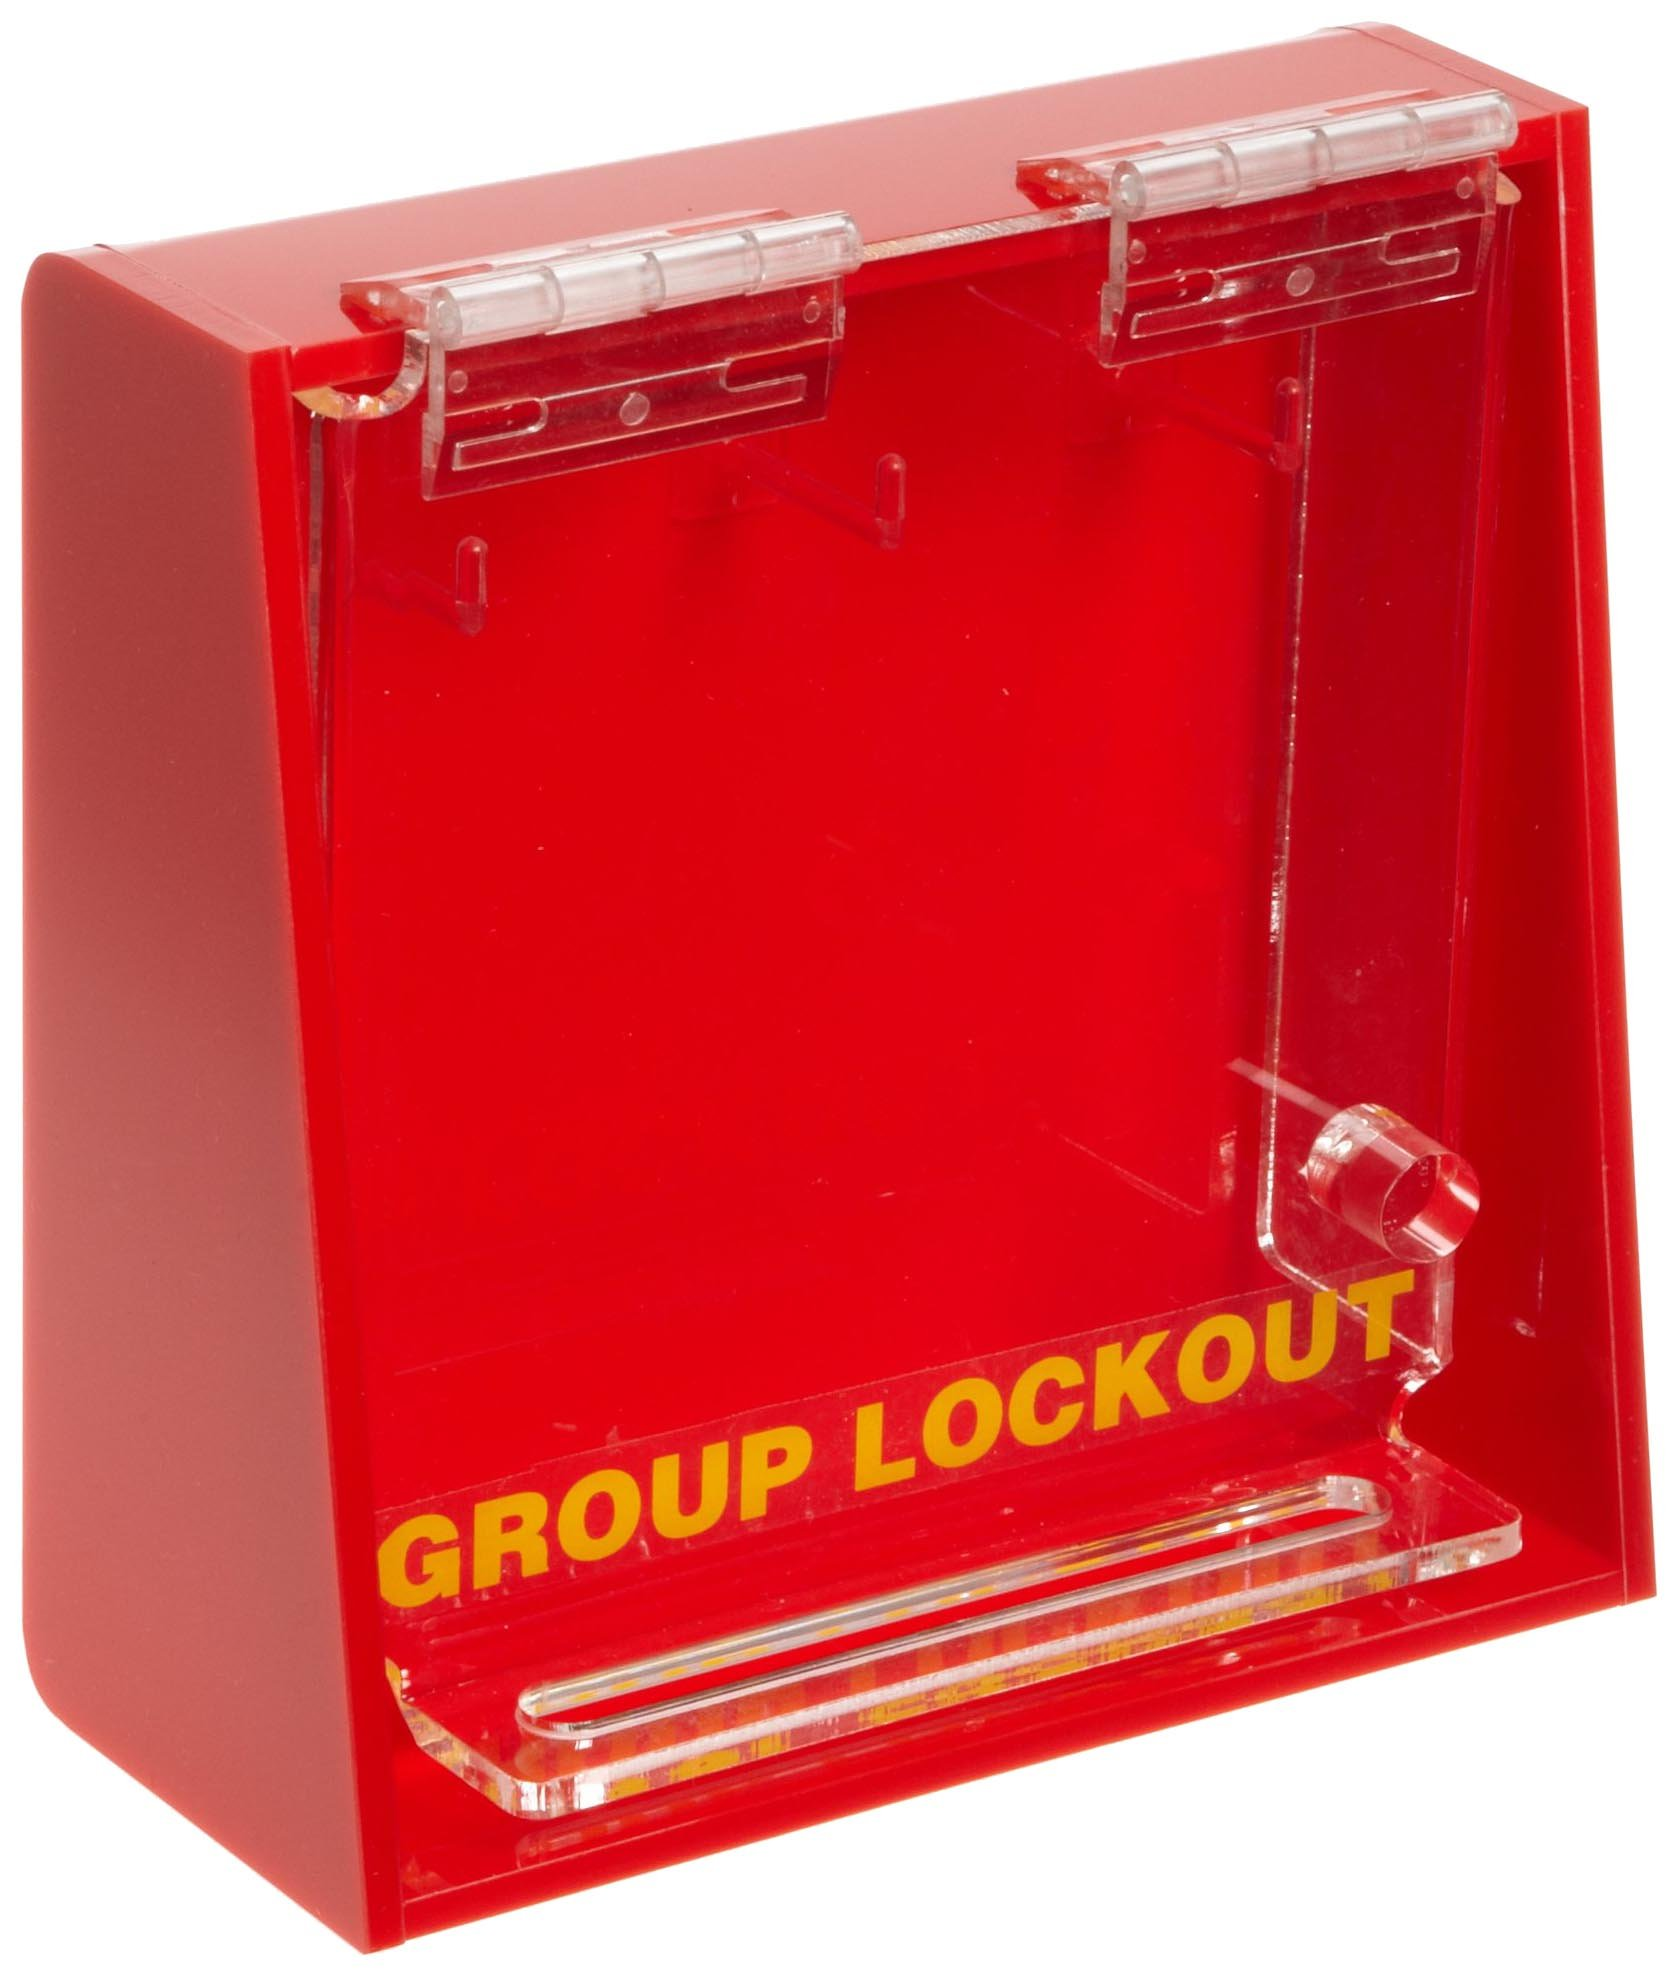 Brady Acrylic Plastic Wall-Mount Group Lock Box for Lockout/Tagout, Small, 6'' Height, 6'' Width, 2-1/2'' Depth